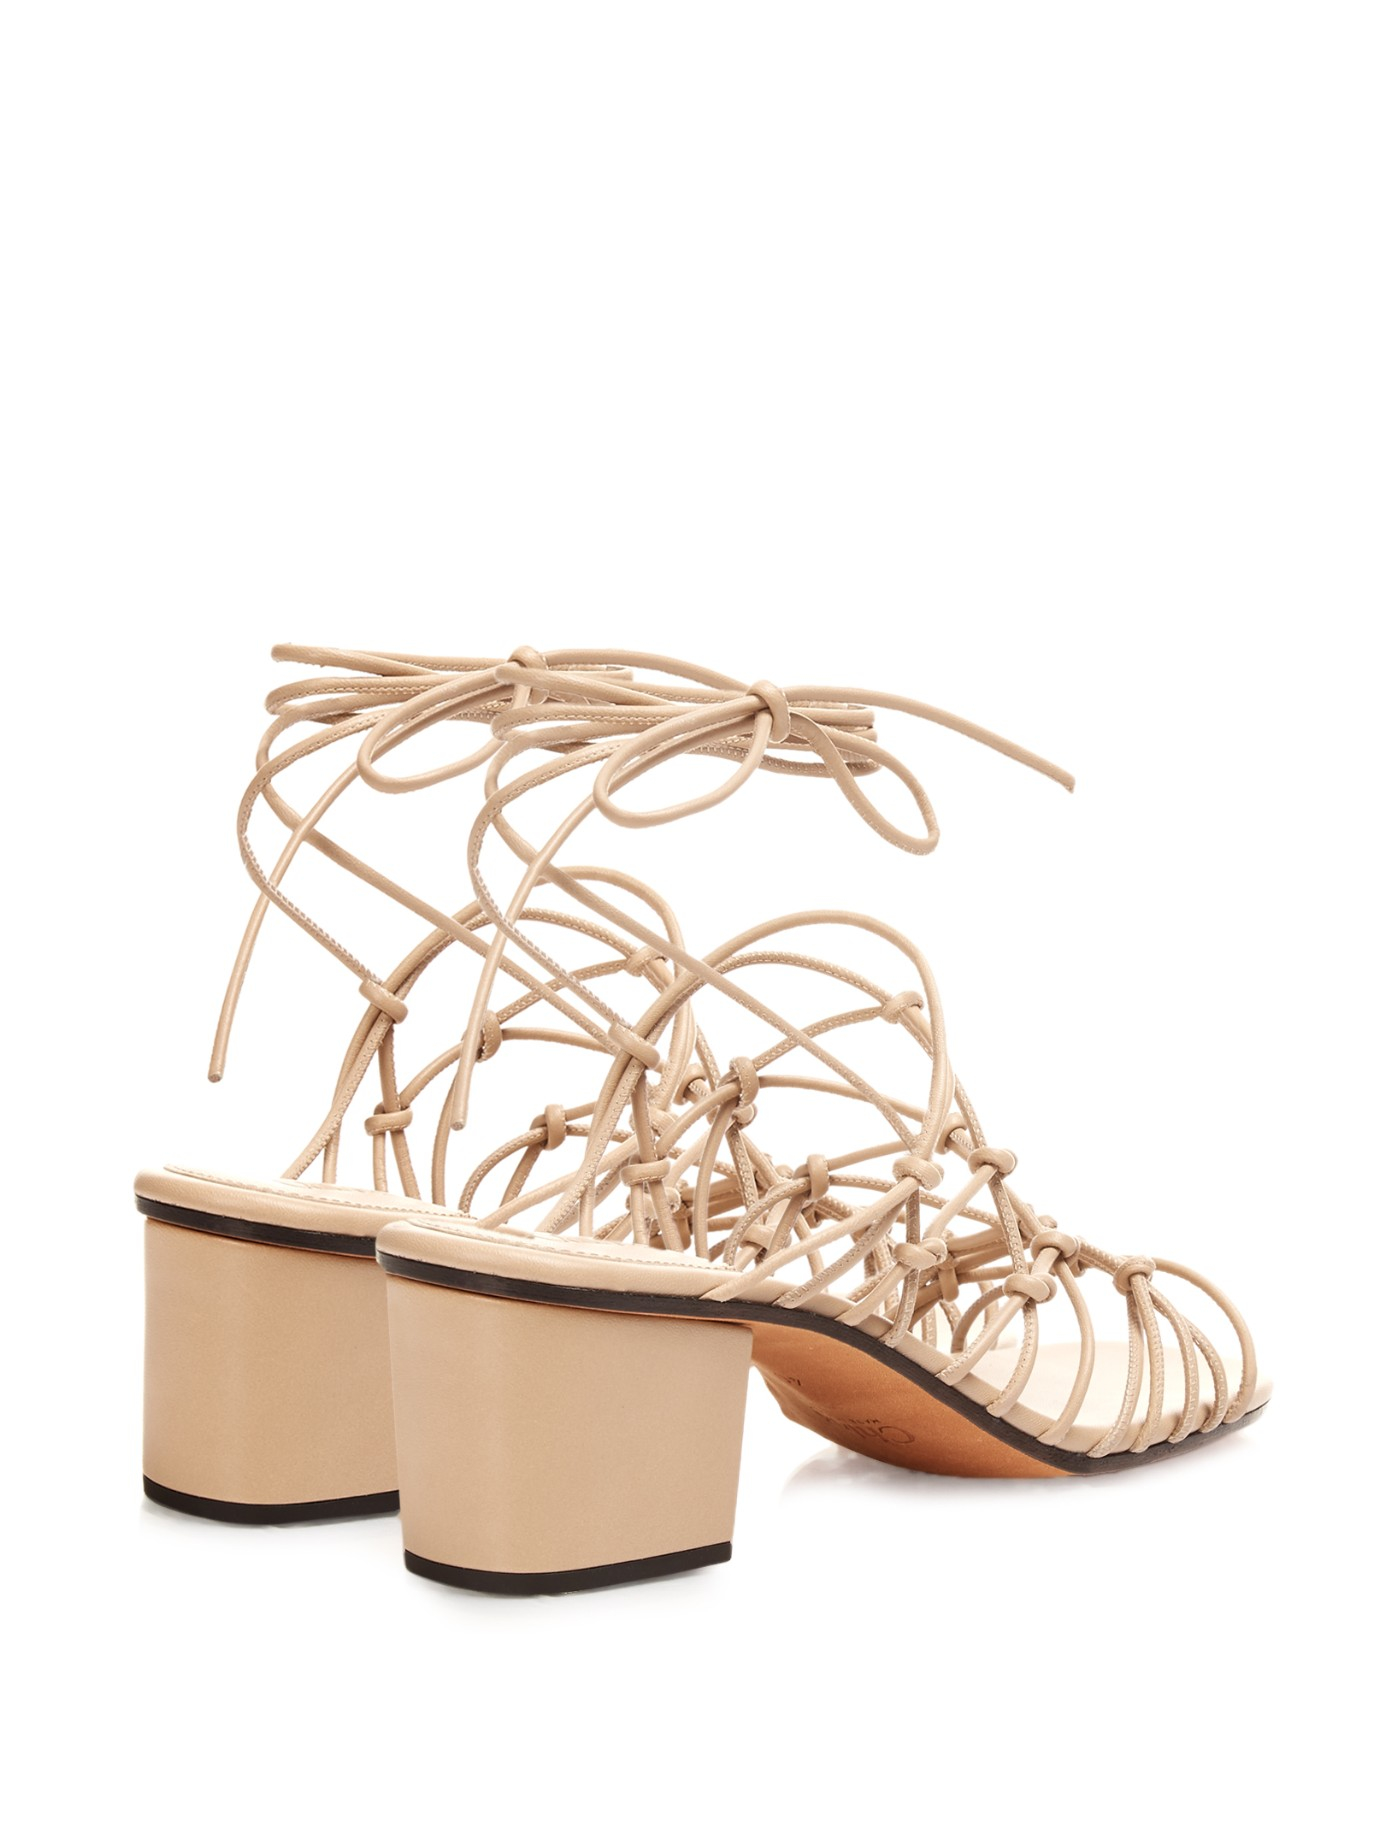 buy sale online Chloé Multistrap Ankle Strap Sandals affordable online buy cheap sneakernews ebay cheap online outlet factory outlet GWSIp8N